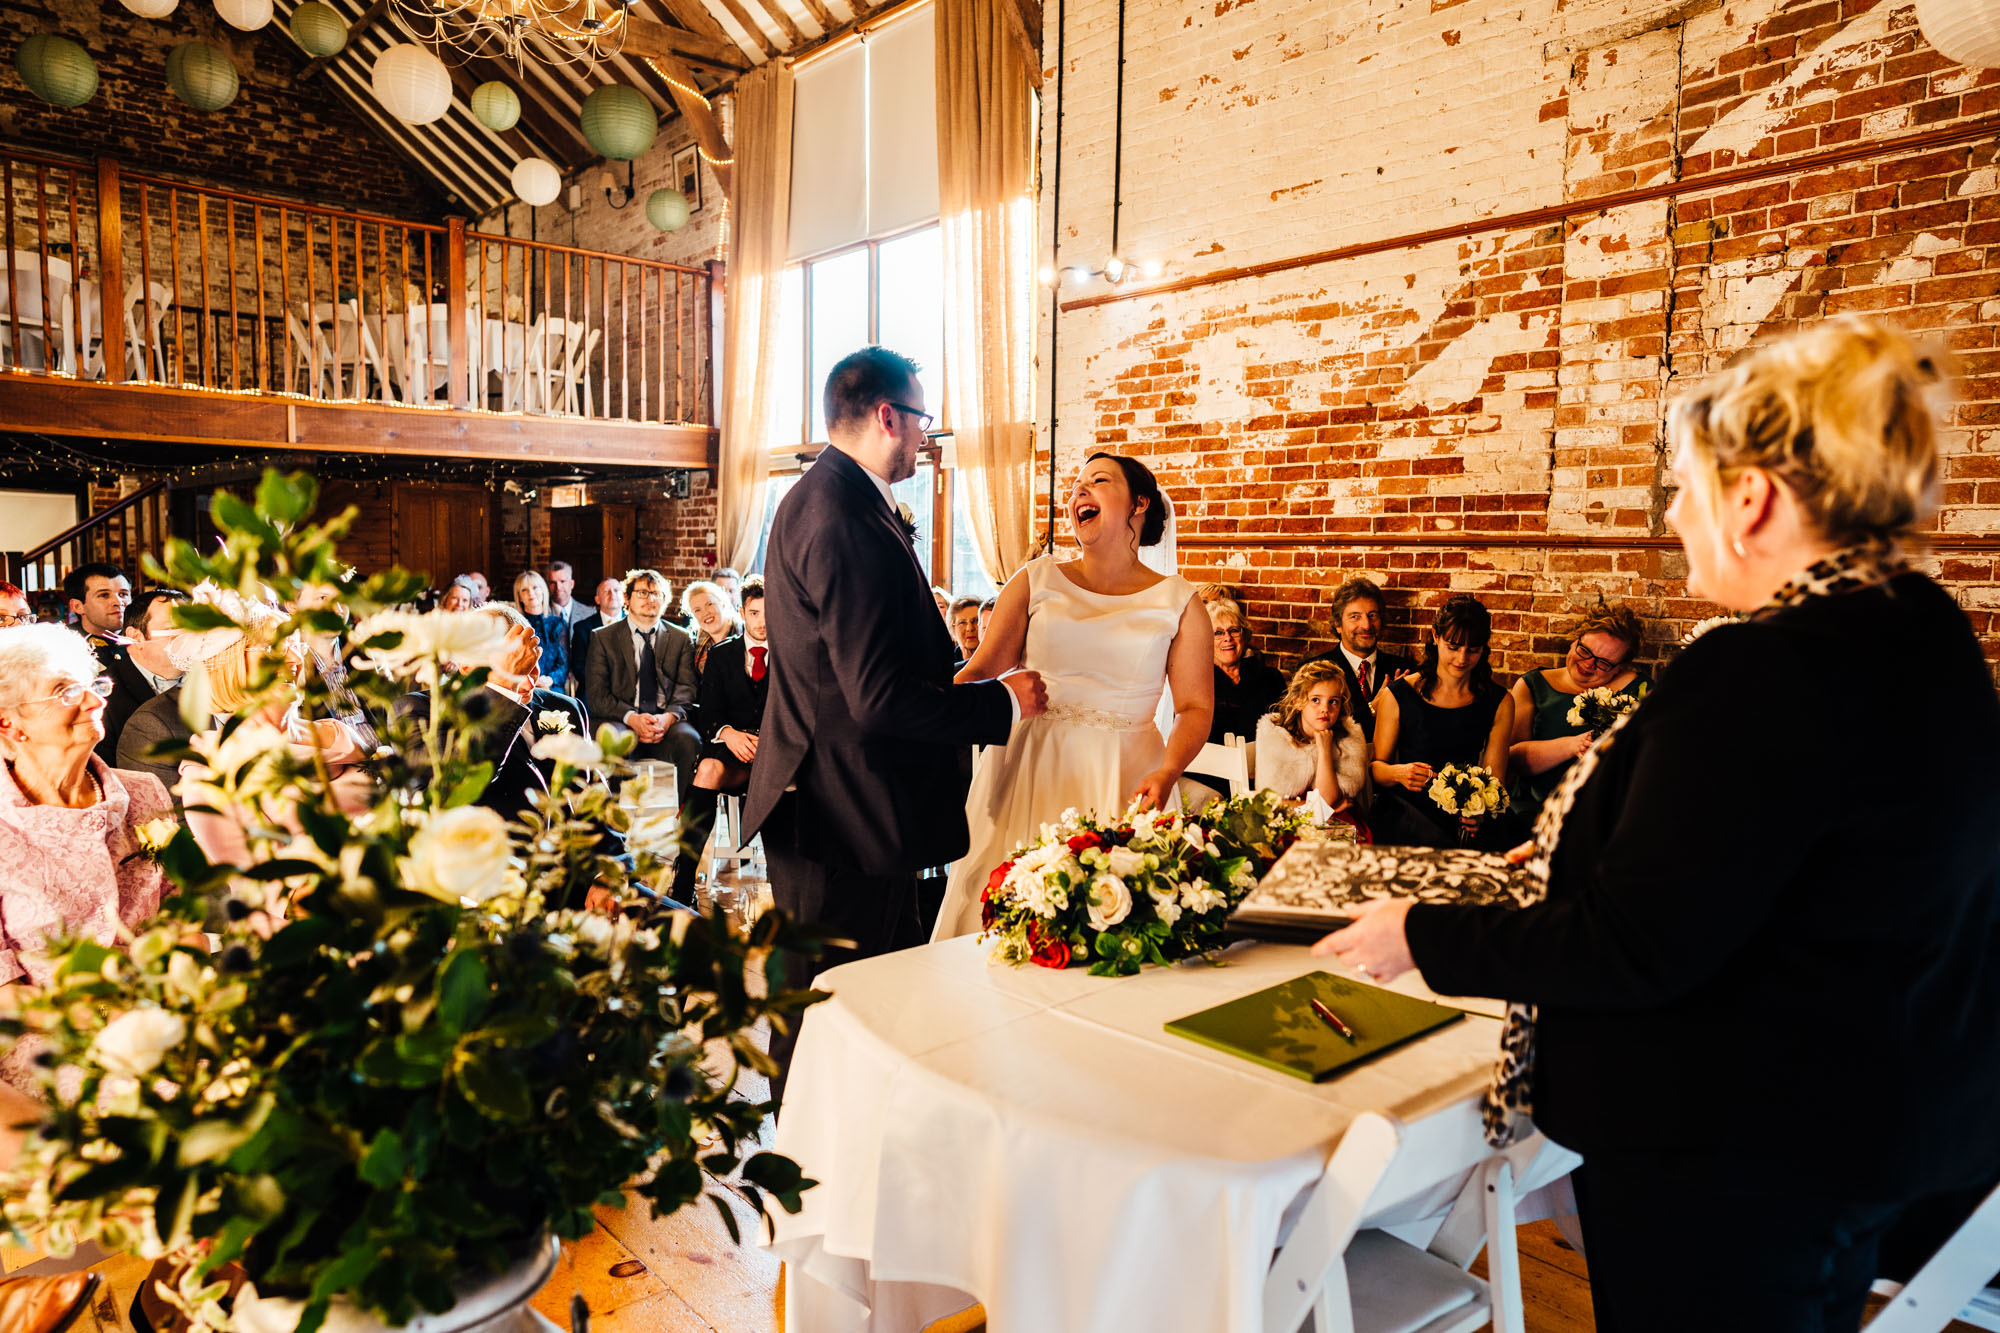 wedding-at-the-dairy-barns-hickling-28